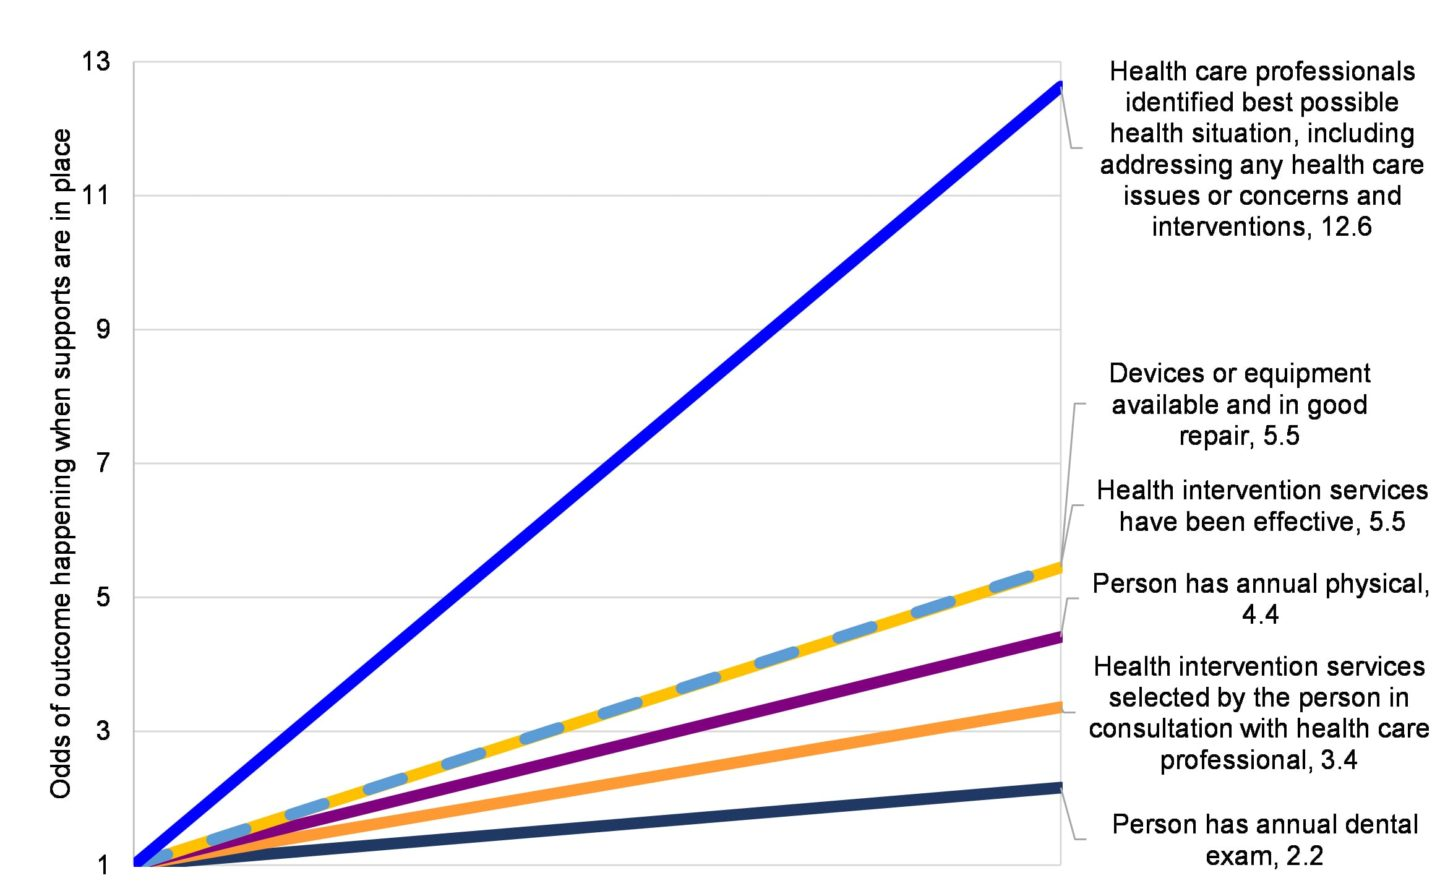 This figure shows the odds of each outcome happening when health supports are in place. When health organizational supports are in place, people are 2.2 times more likely to have annual dental exams, 3.4 times more likely to have health intervention services selected by the person, 4.4 times more likely to have an annual physical, 5.5 times more likely to have effective health interventions, 5.5 times more likely to have devices and equipment available and in good repair, and 12.6 times more likely to have health care professionals identify best possible health situations, including addressing any health care issues or concerns and interventions.